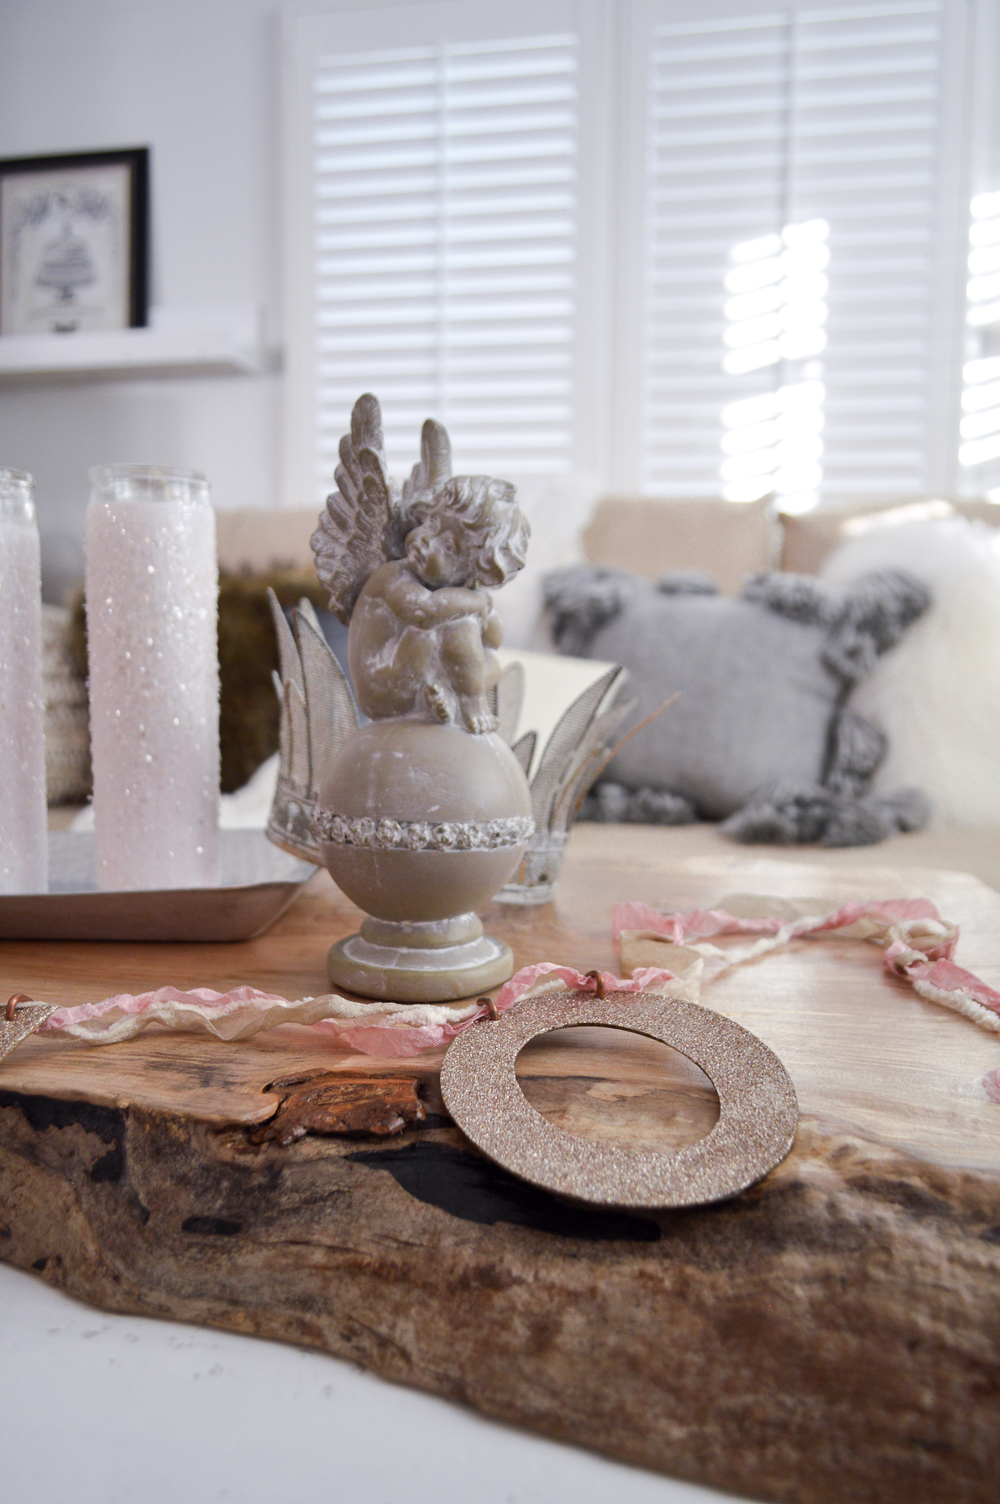 DIY a Live Edge Maple Wood Slab into a Table Charger for Beautiful Layering and Easy Farmhouse Style.